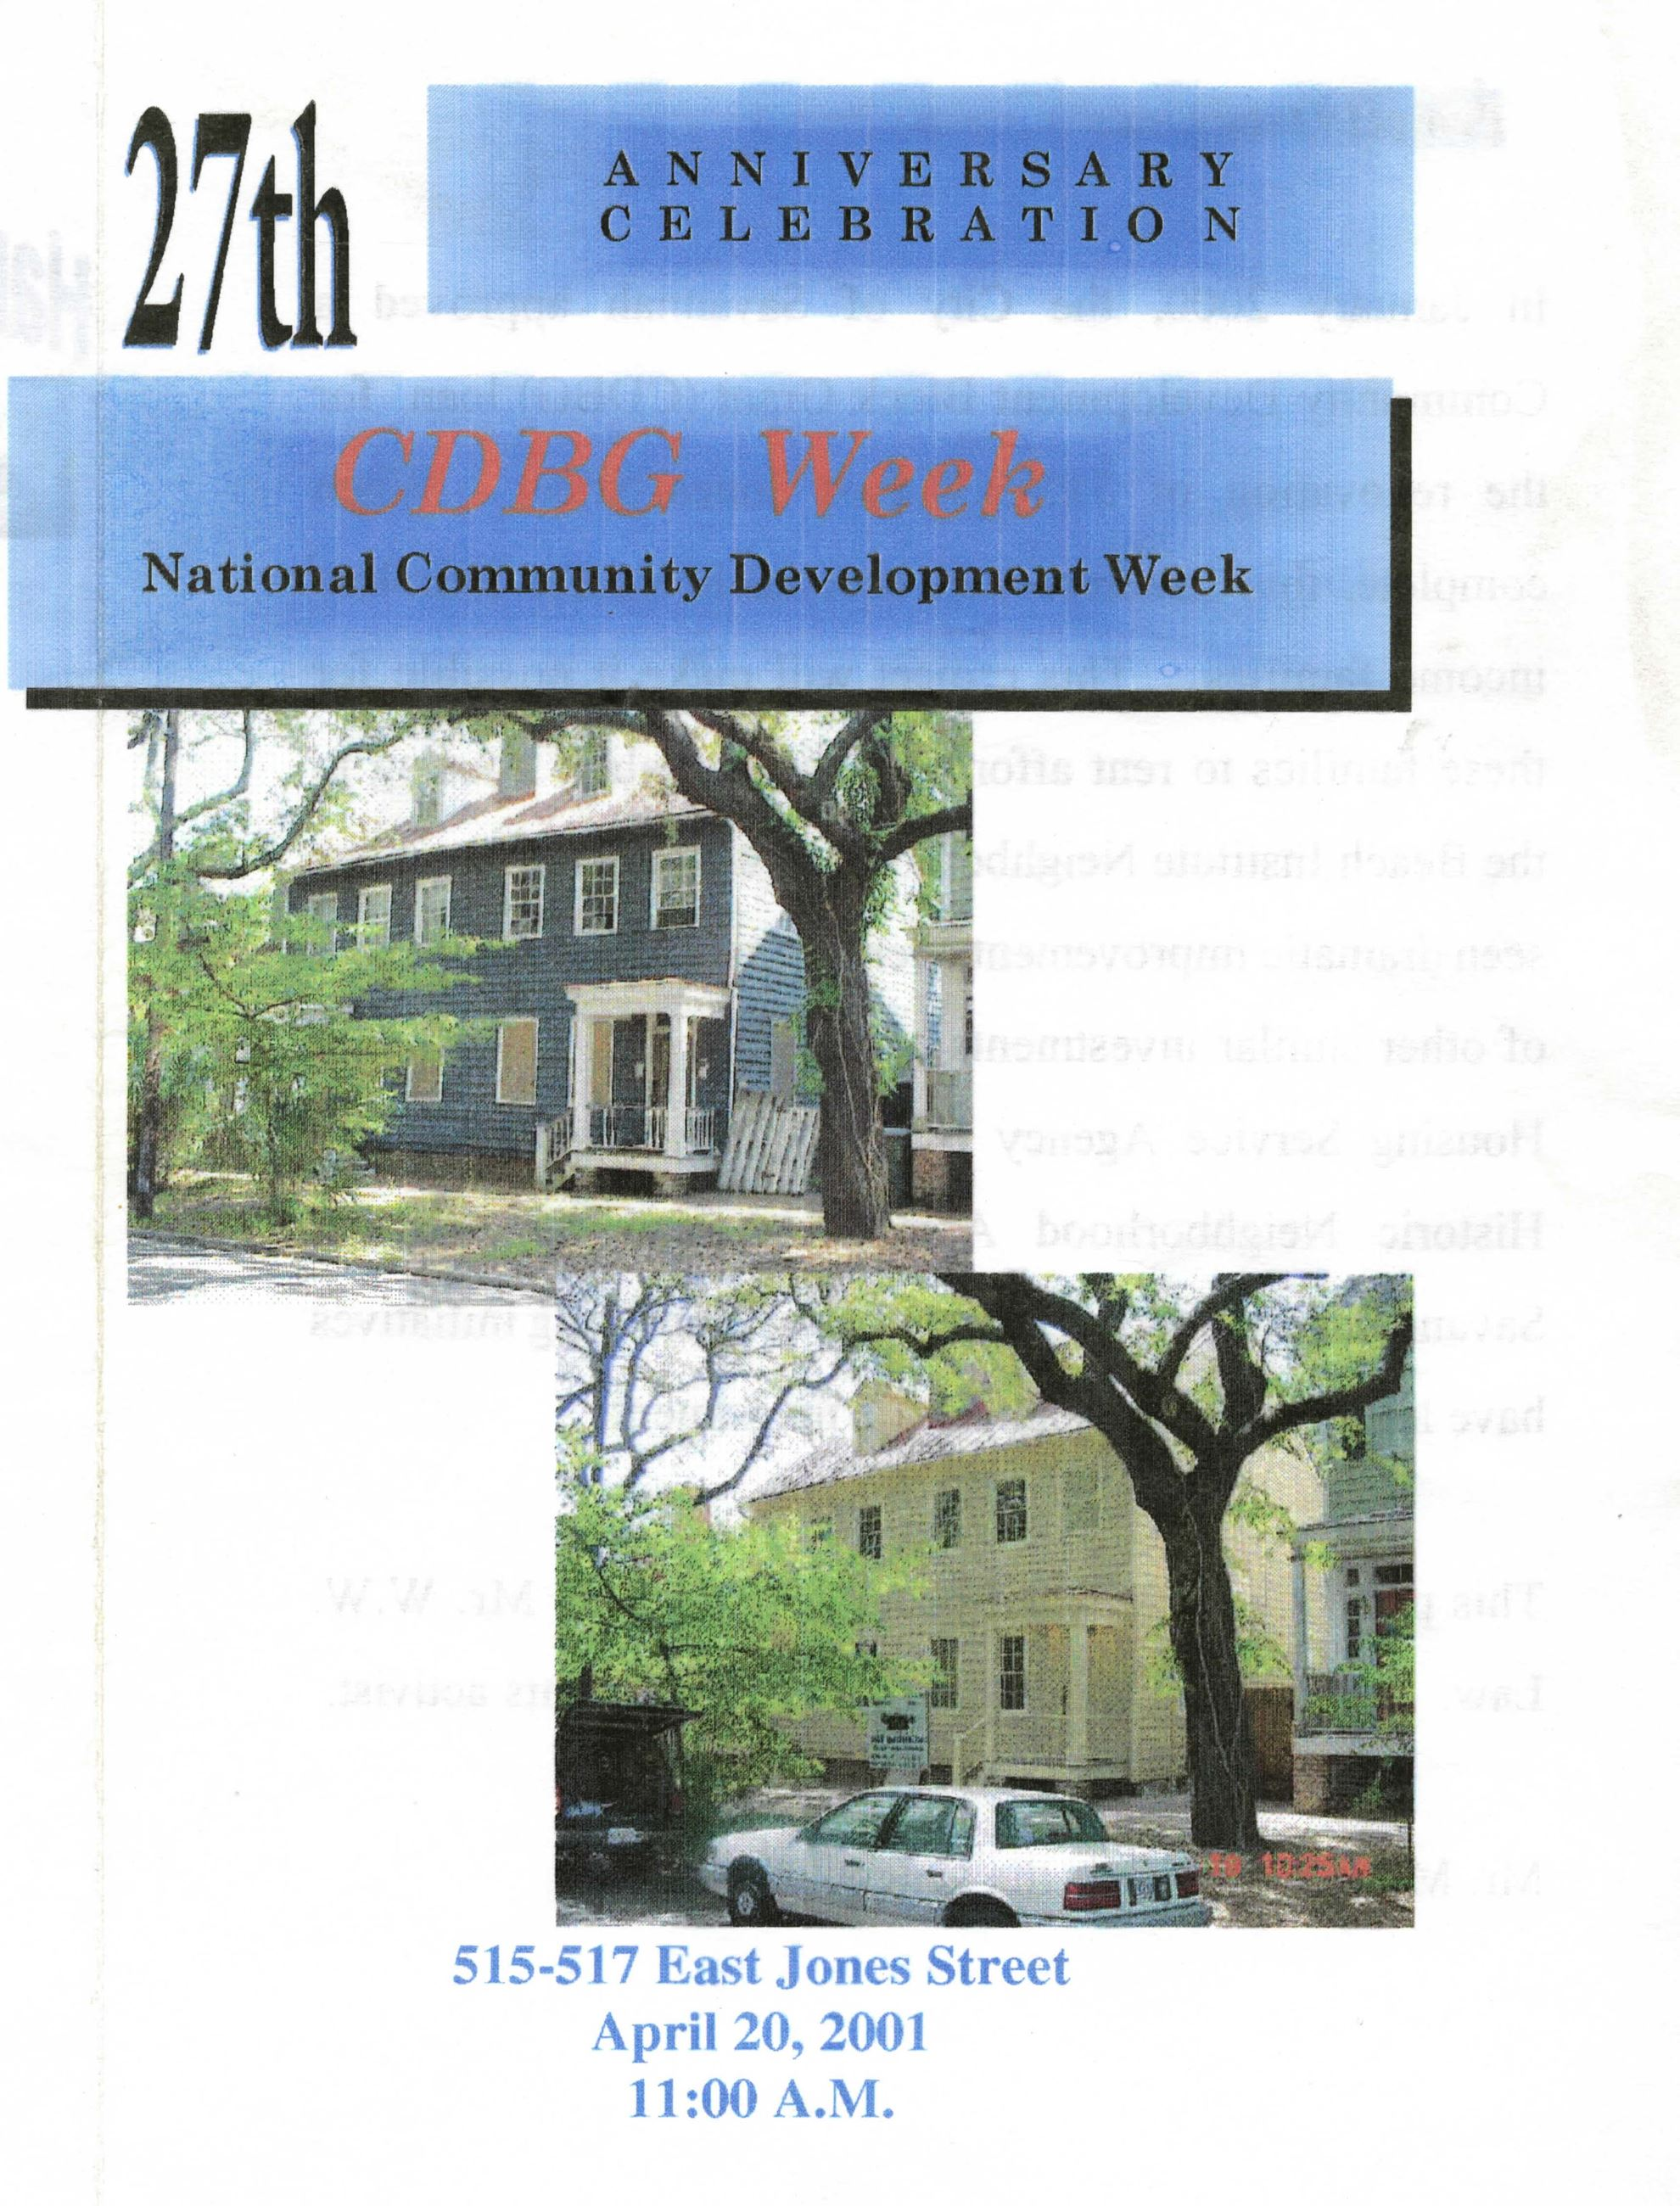 National Community Development Week Celebration